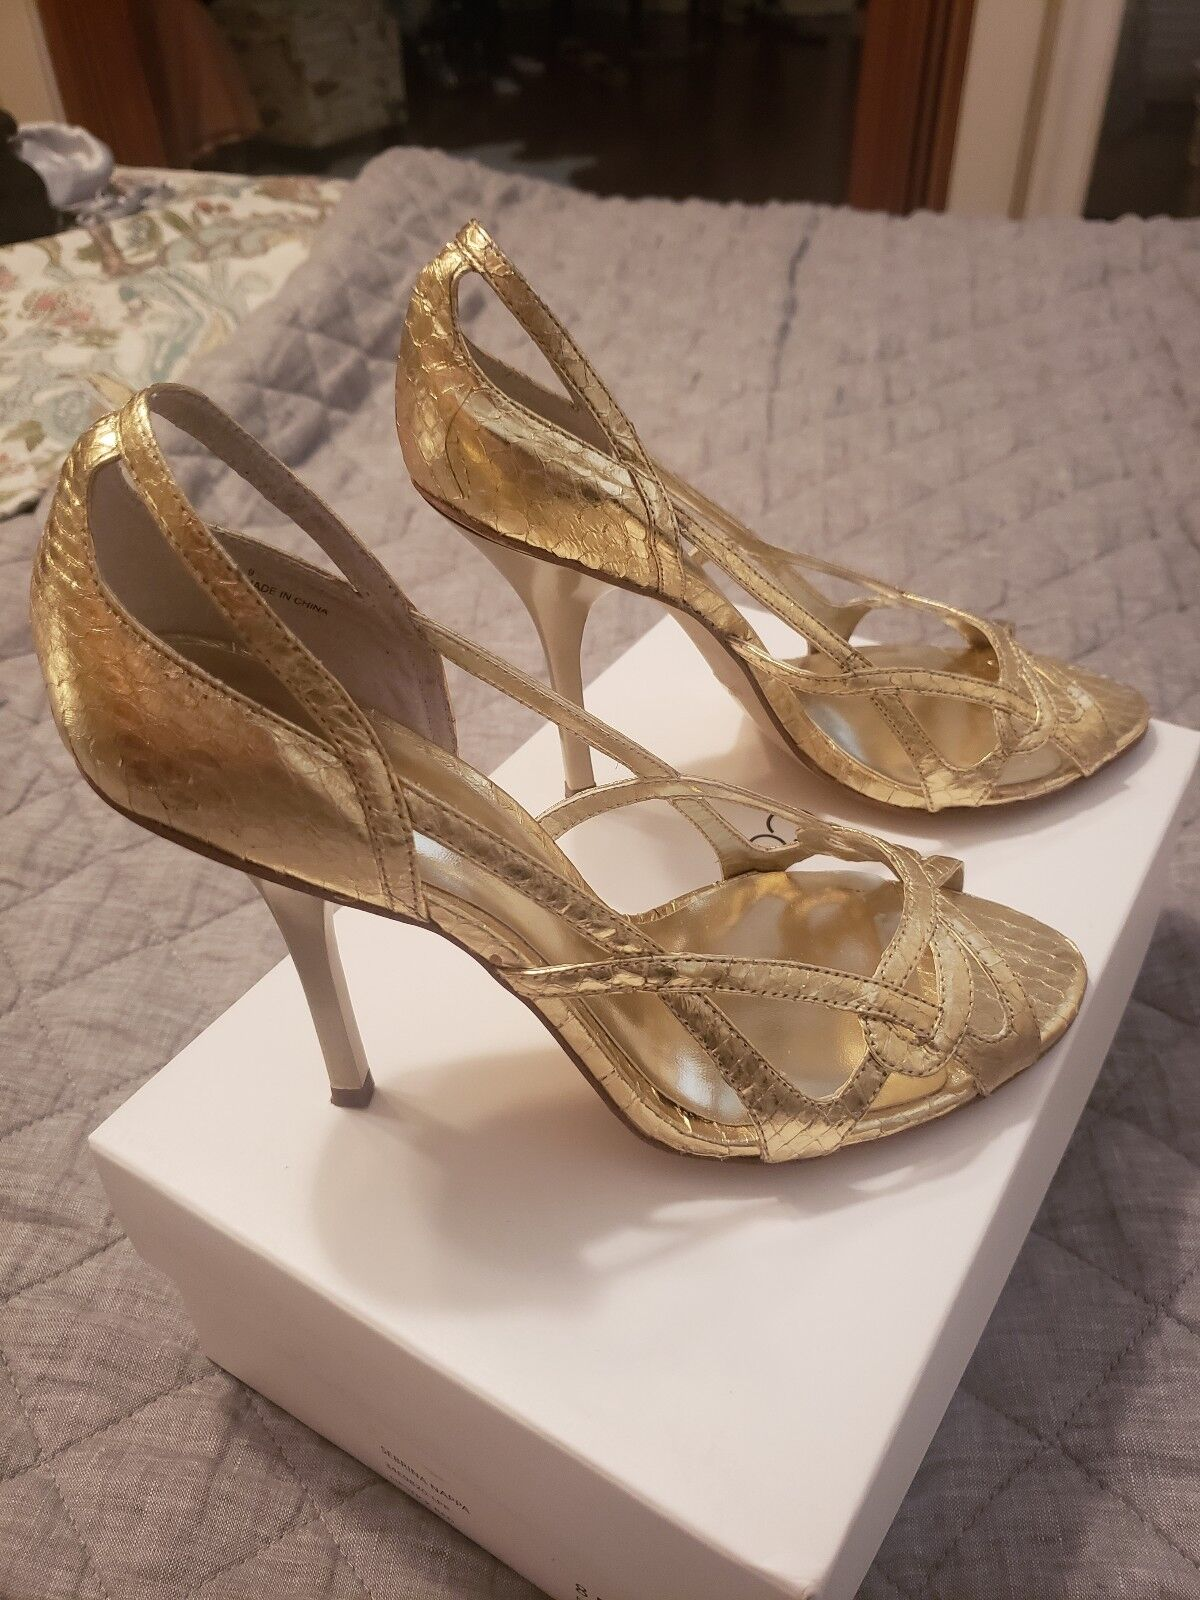 BCBGirls Metallic or Snake Embossed Leather Cut Out Heels 8.5 EUC